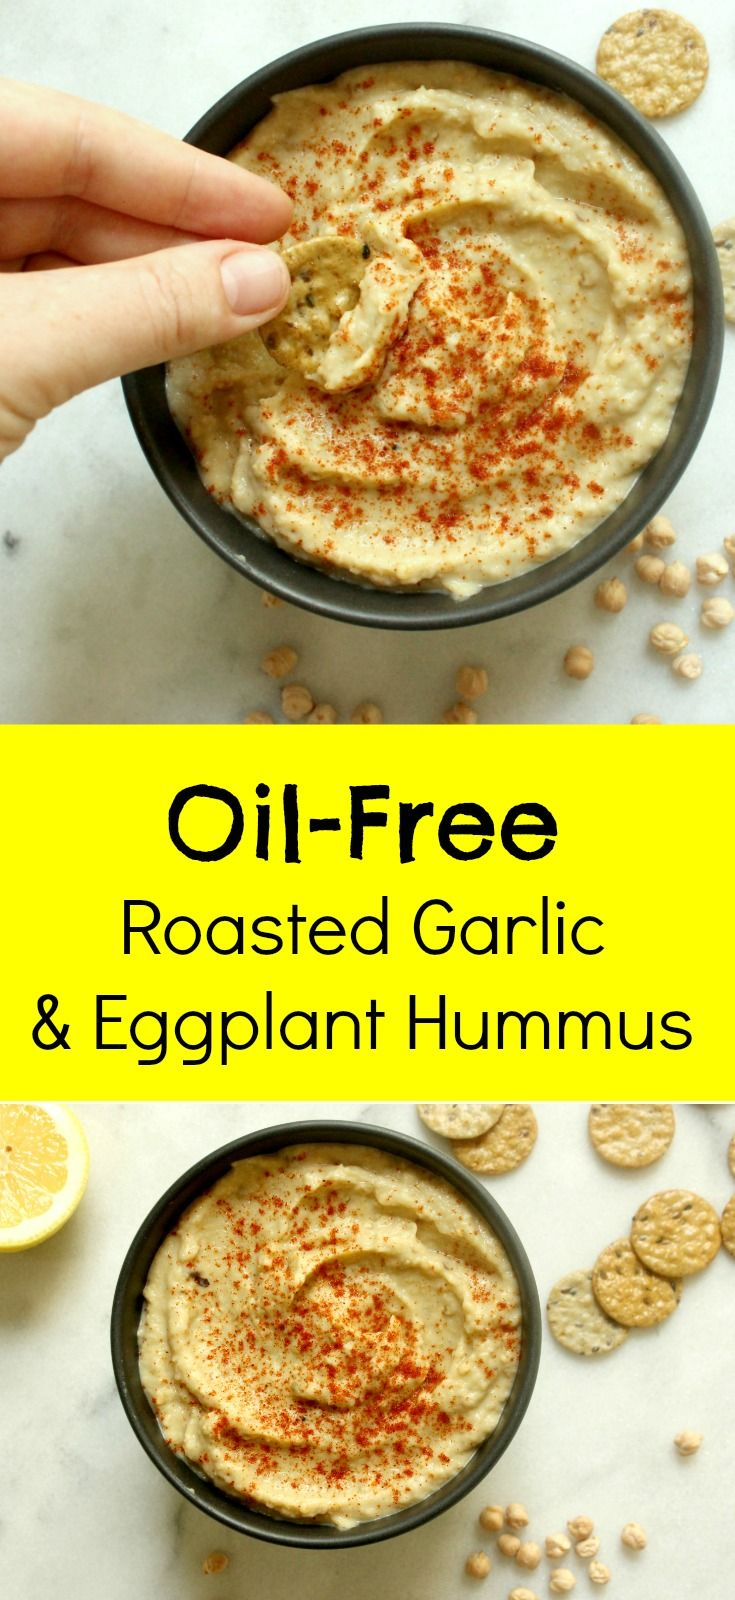 Roasted Garlic and Eggplant Hummus | Oil Free Vegan Hummus | Healthy Recipes for Weight Loss | Vegan Recipes for Beginners | Whole Food Plant Based | Clean Eating | Healthy Eating | Vegan Snacks